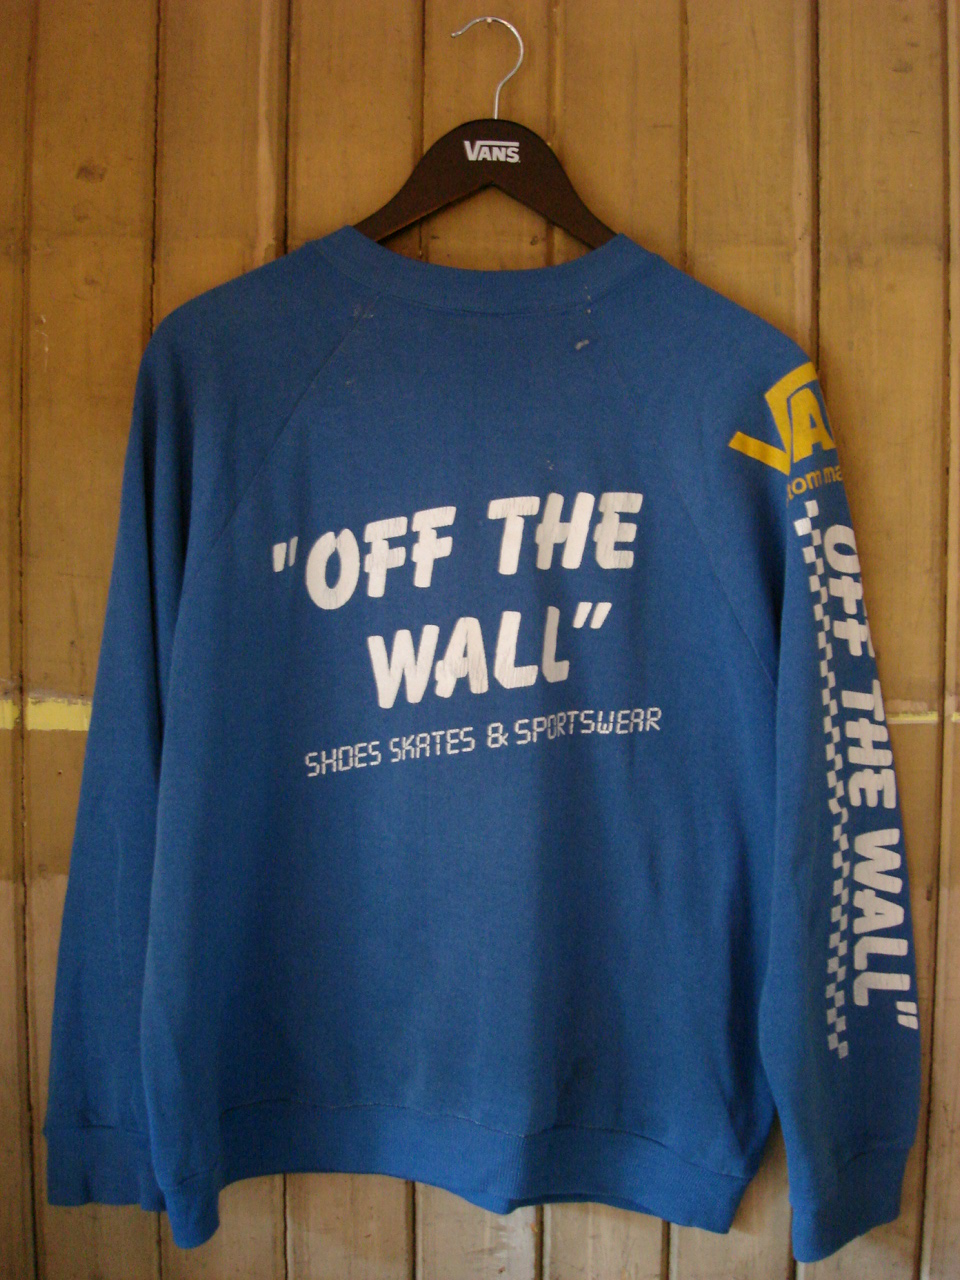 7ff1e6890a theothersideofthepillow  vintage VANS off the wall SWEATSHIRT bmx ...